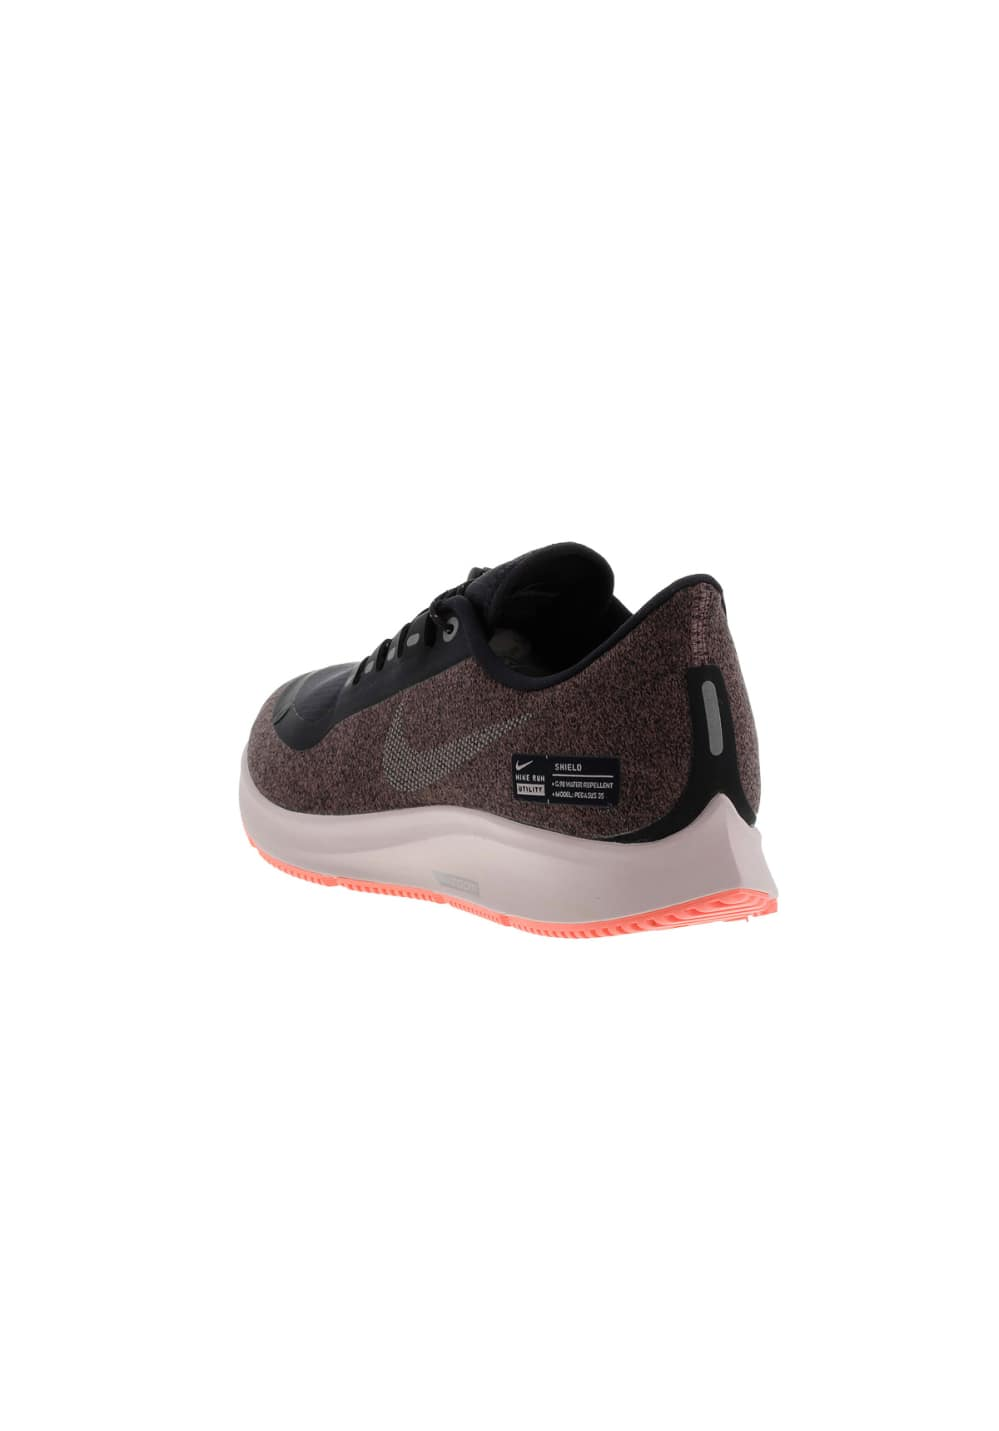 best service 074df f50f4 Next. -32%. Nike. Air Zoom Pegasus 35 Rn Shield - Chaussures running pour  Femme. Prix normal ...